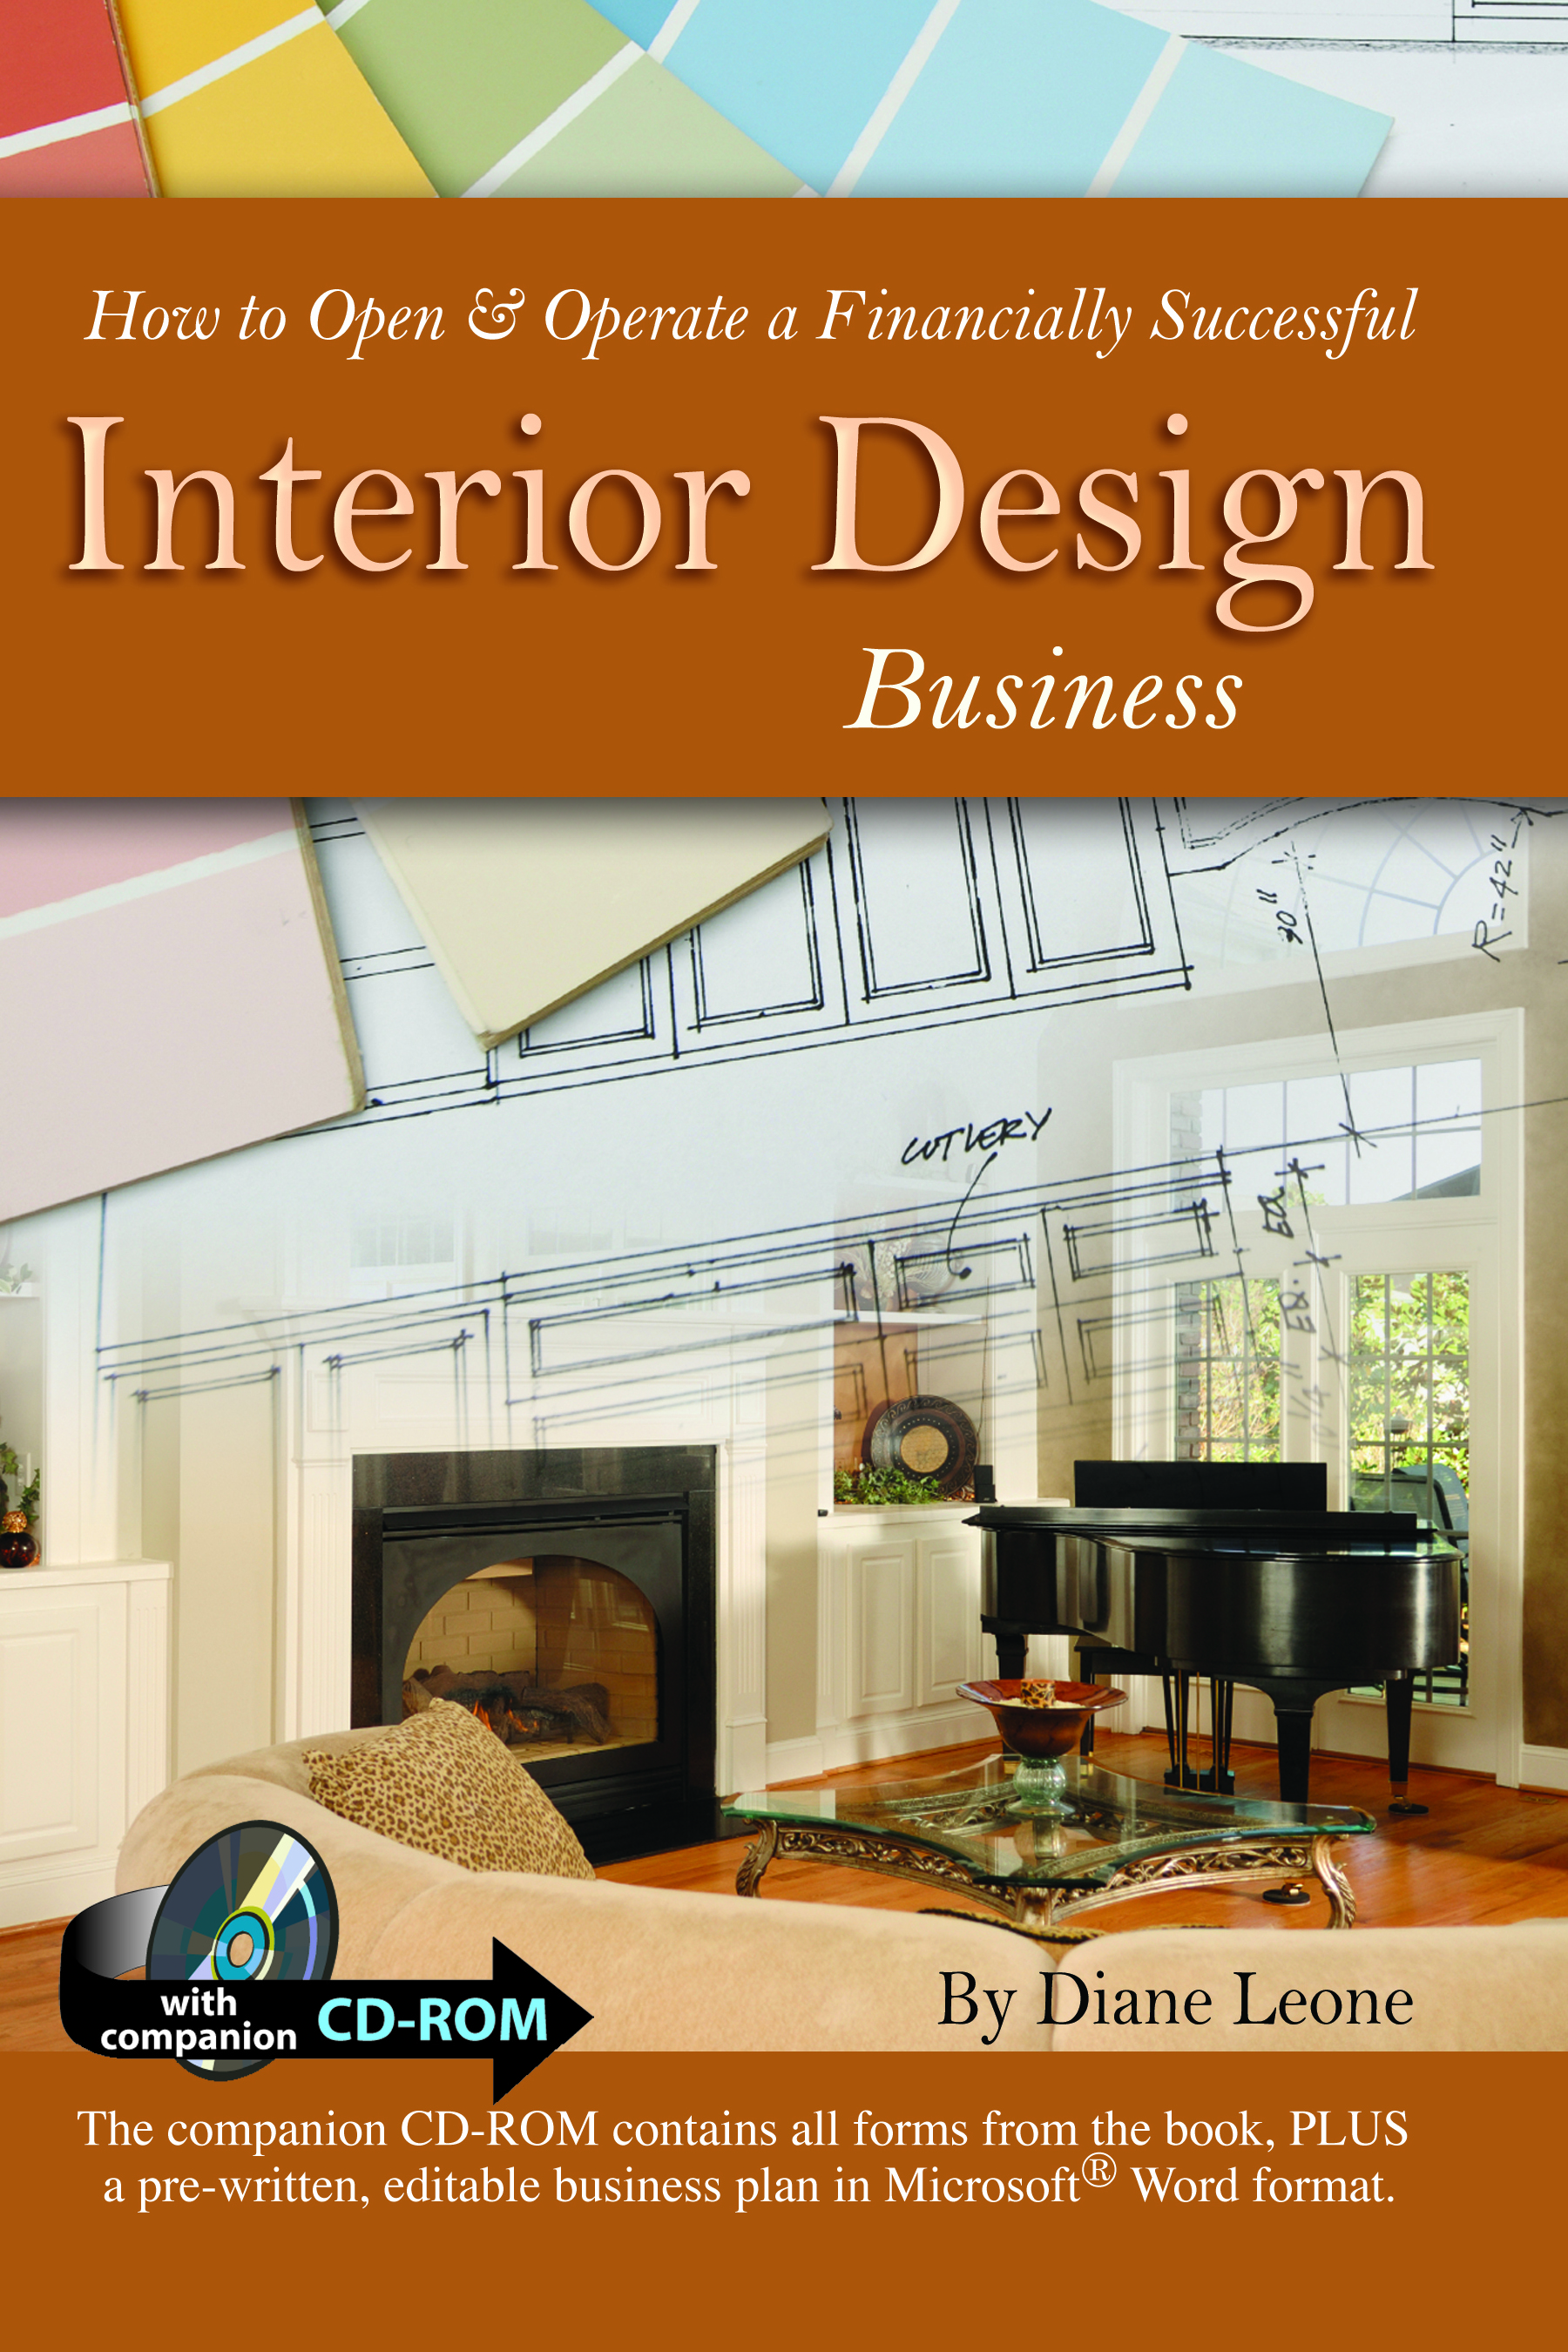 How to Open & Operate a Financially Successful Interior Design Business with Companion CD-ROM